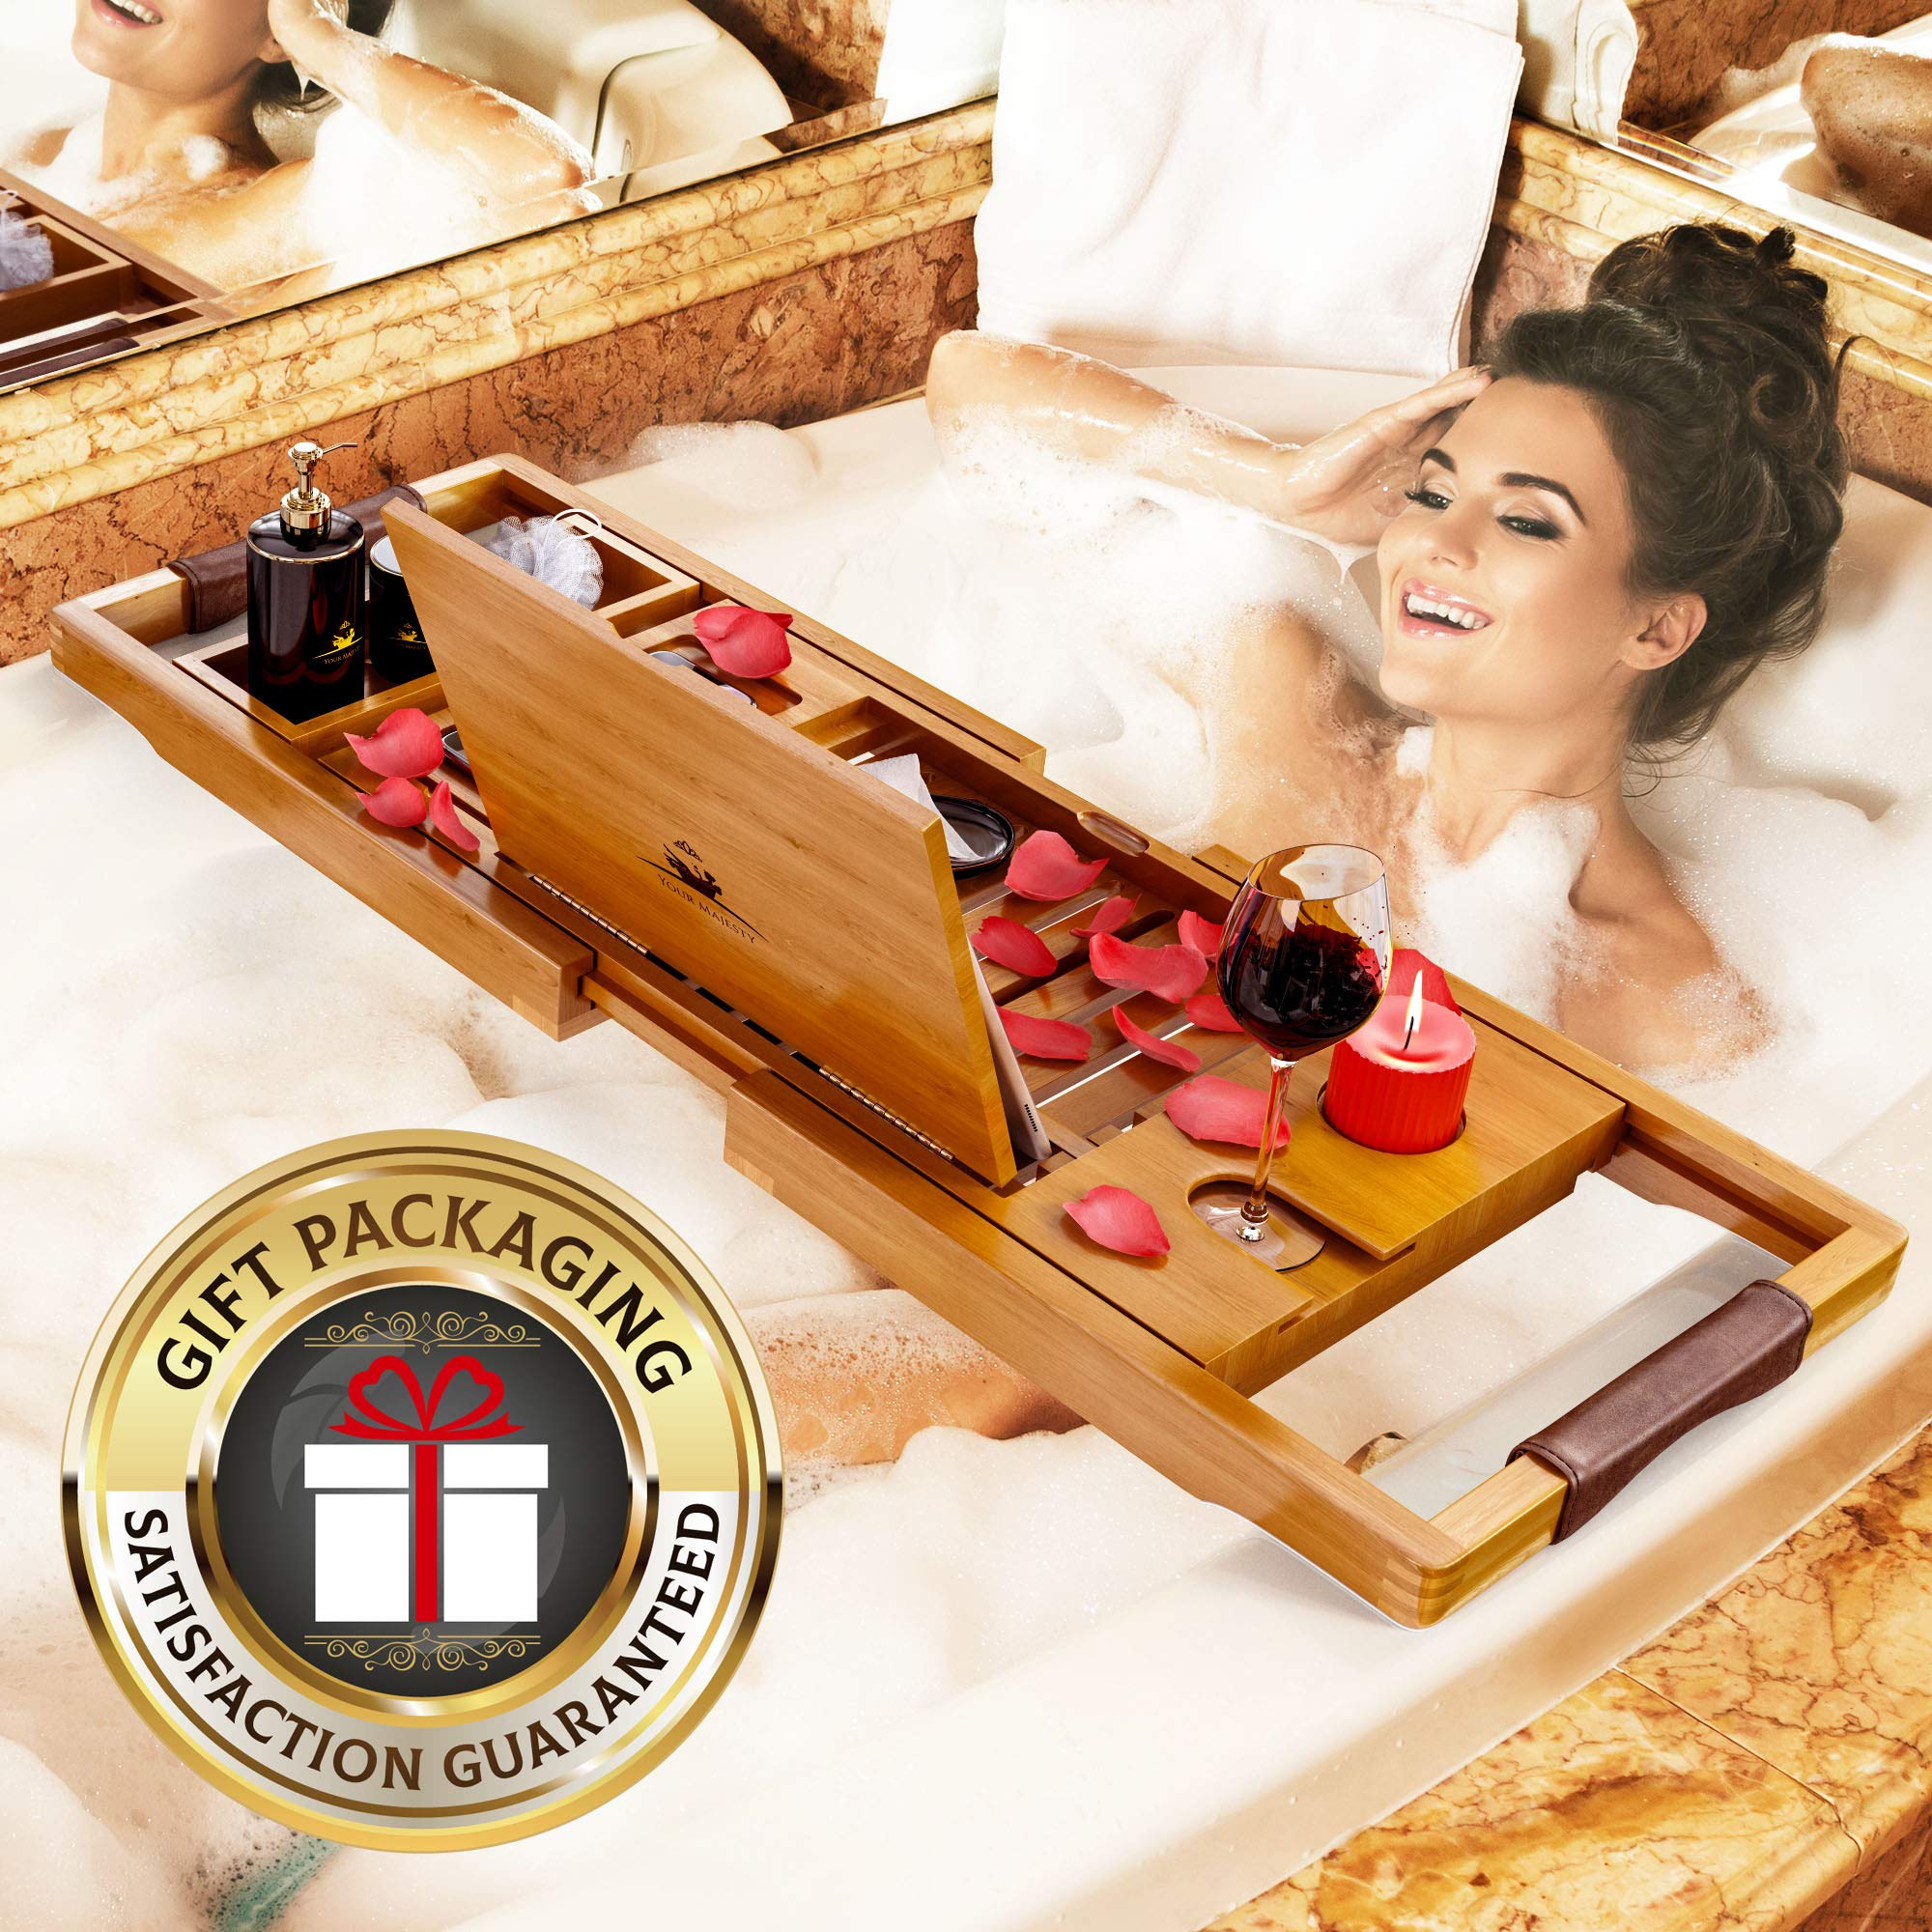 YM Lux Craft Bamboo Bathtub Caddy Tray [Durable, Non-Slip], 1-2 Adults Expandable Bath Tray, Beautiful Gift Box, Fits Any Tub - Holds Book, Wine, Phone, Ipad, Laptop, Etc - Free Bathroom Door Hanger by Your Majesty